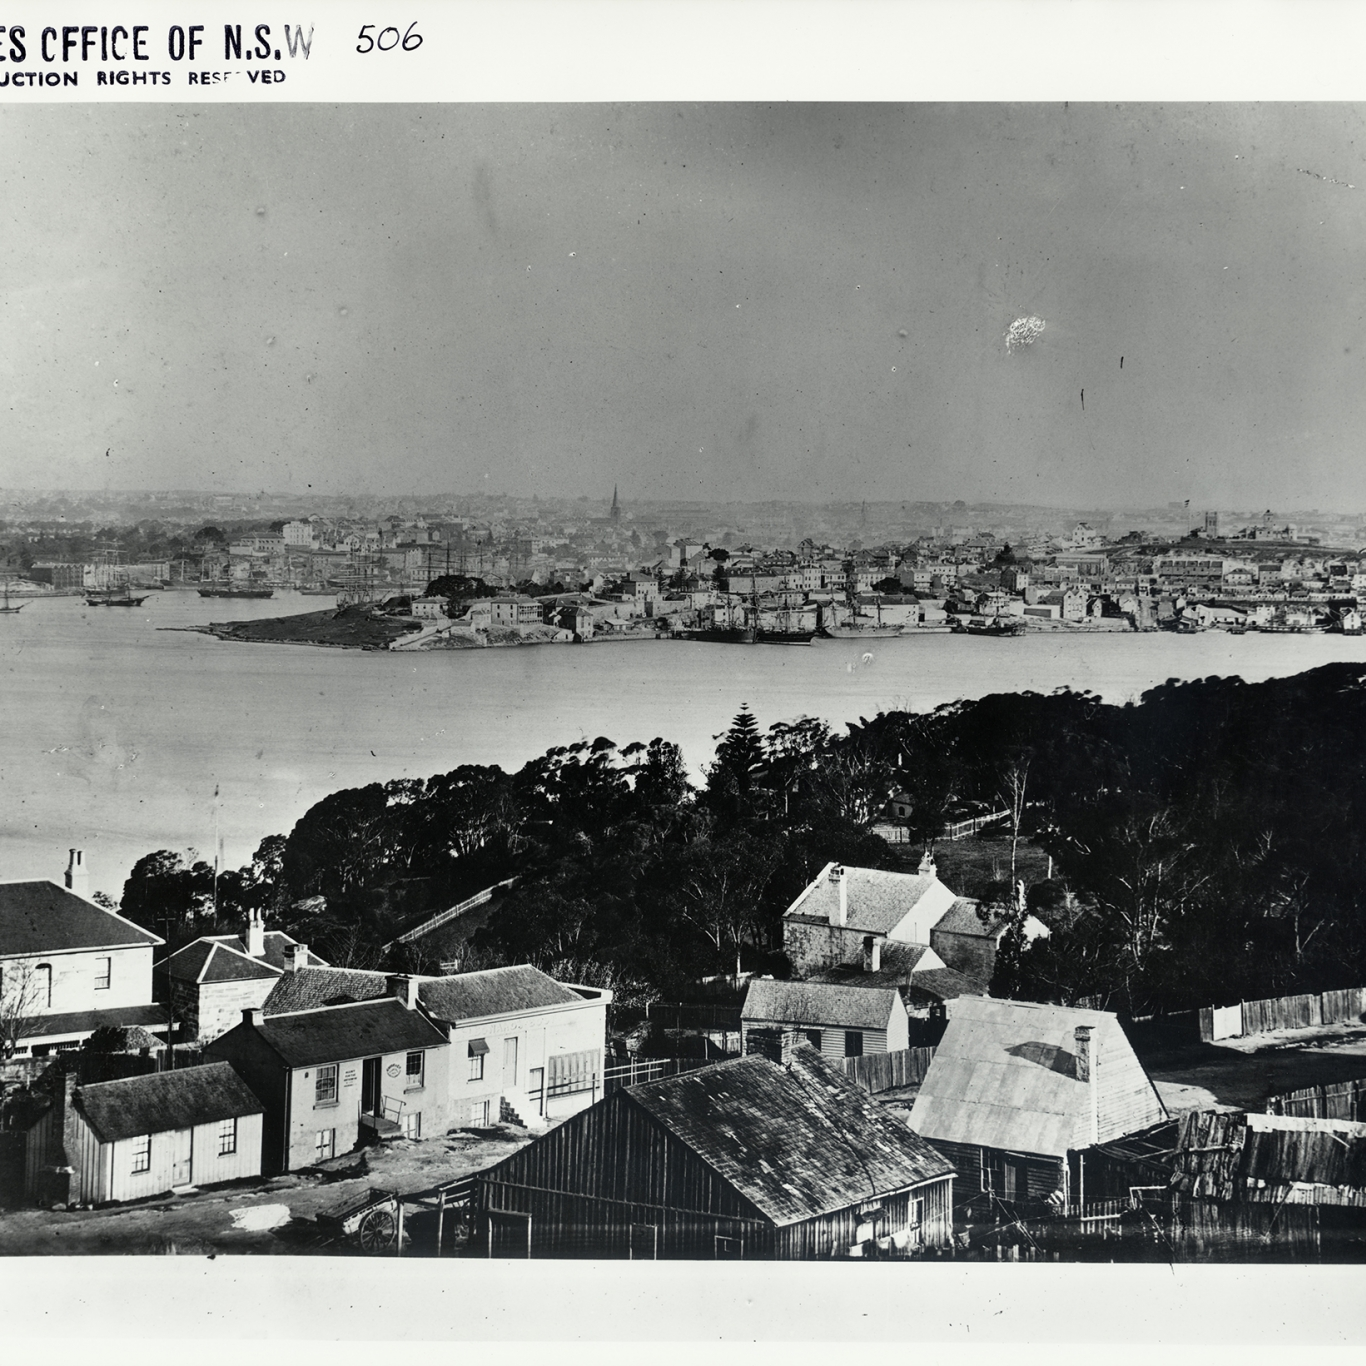 Black and white photograph looking across water with buildings and vegetation in foreground.